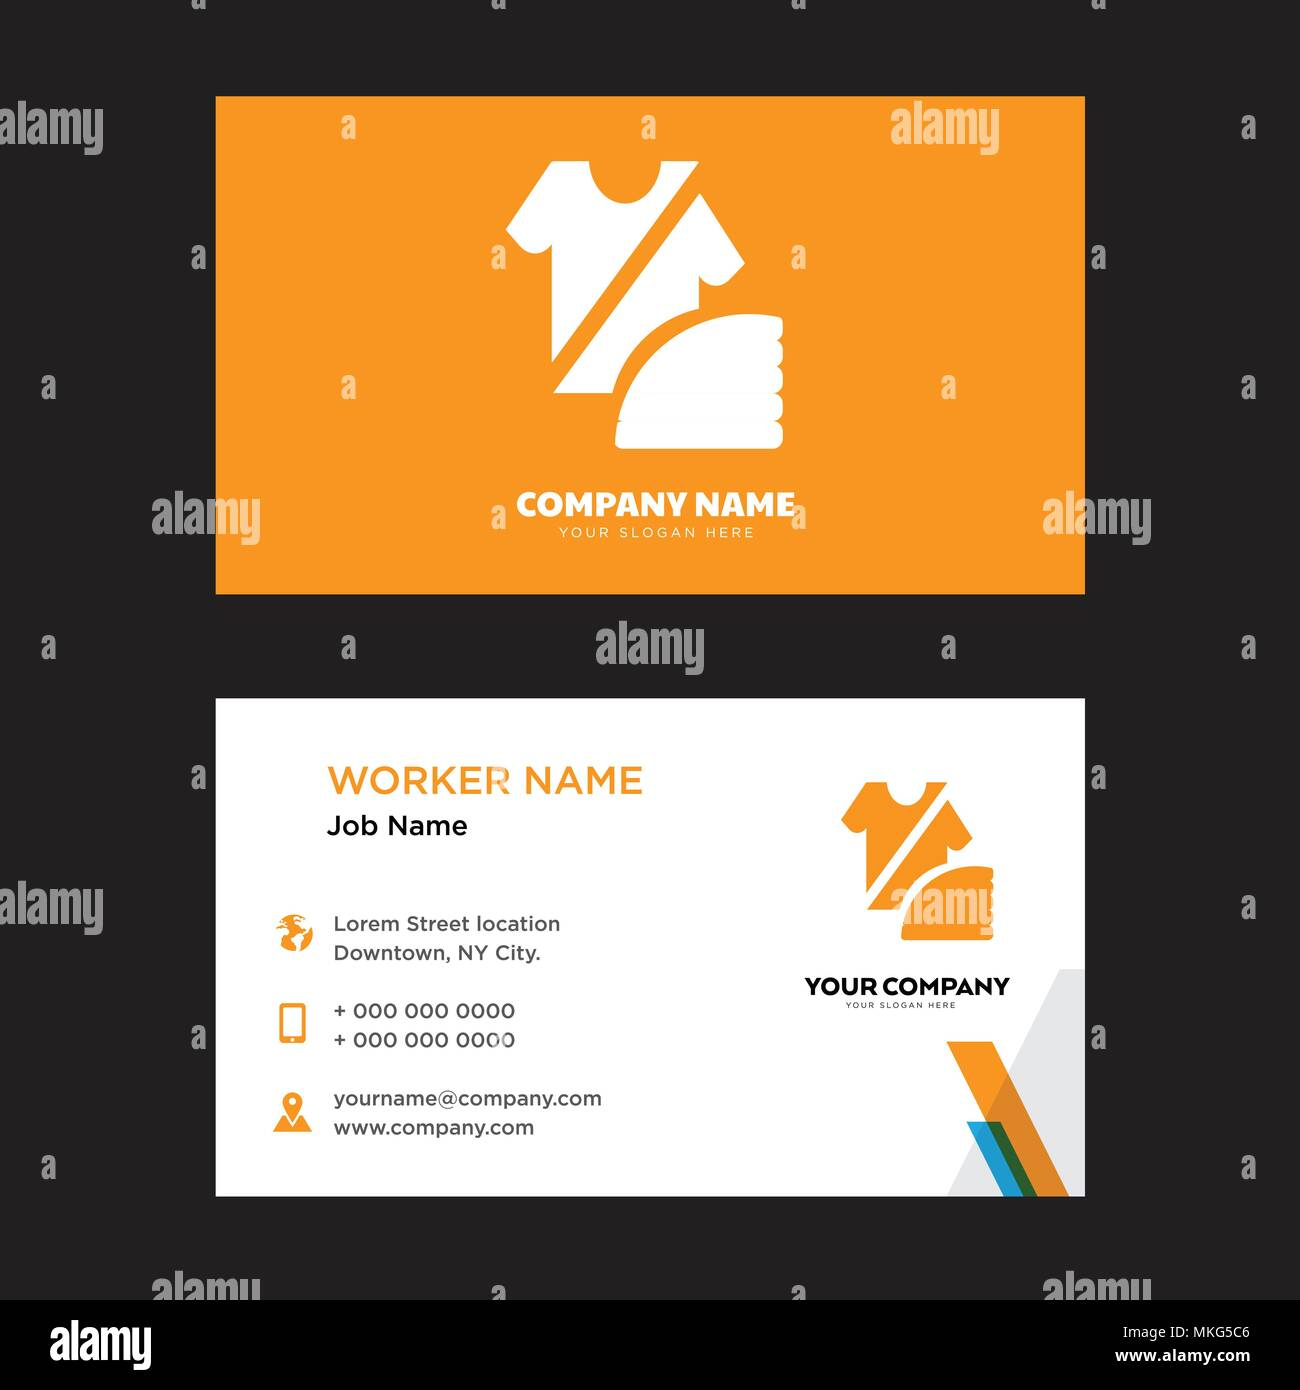 Fashion Business Card Design Template Visiting For Your Company Modern Horizontal Identity Vector